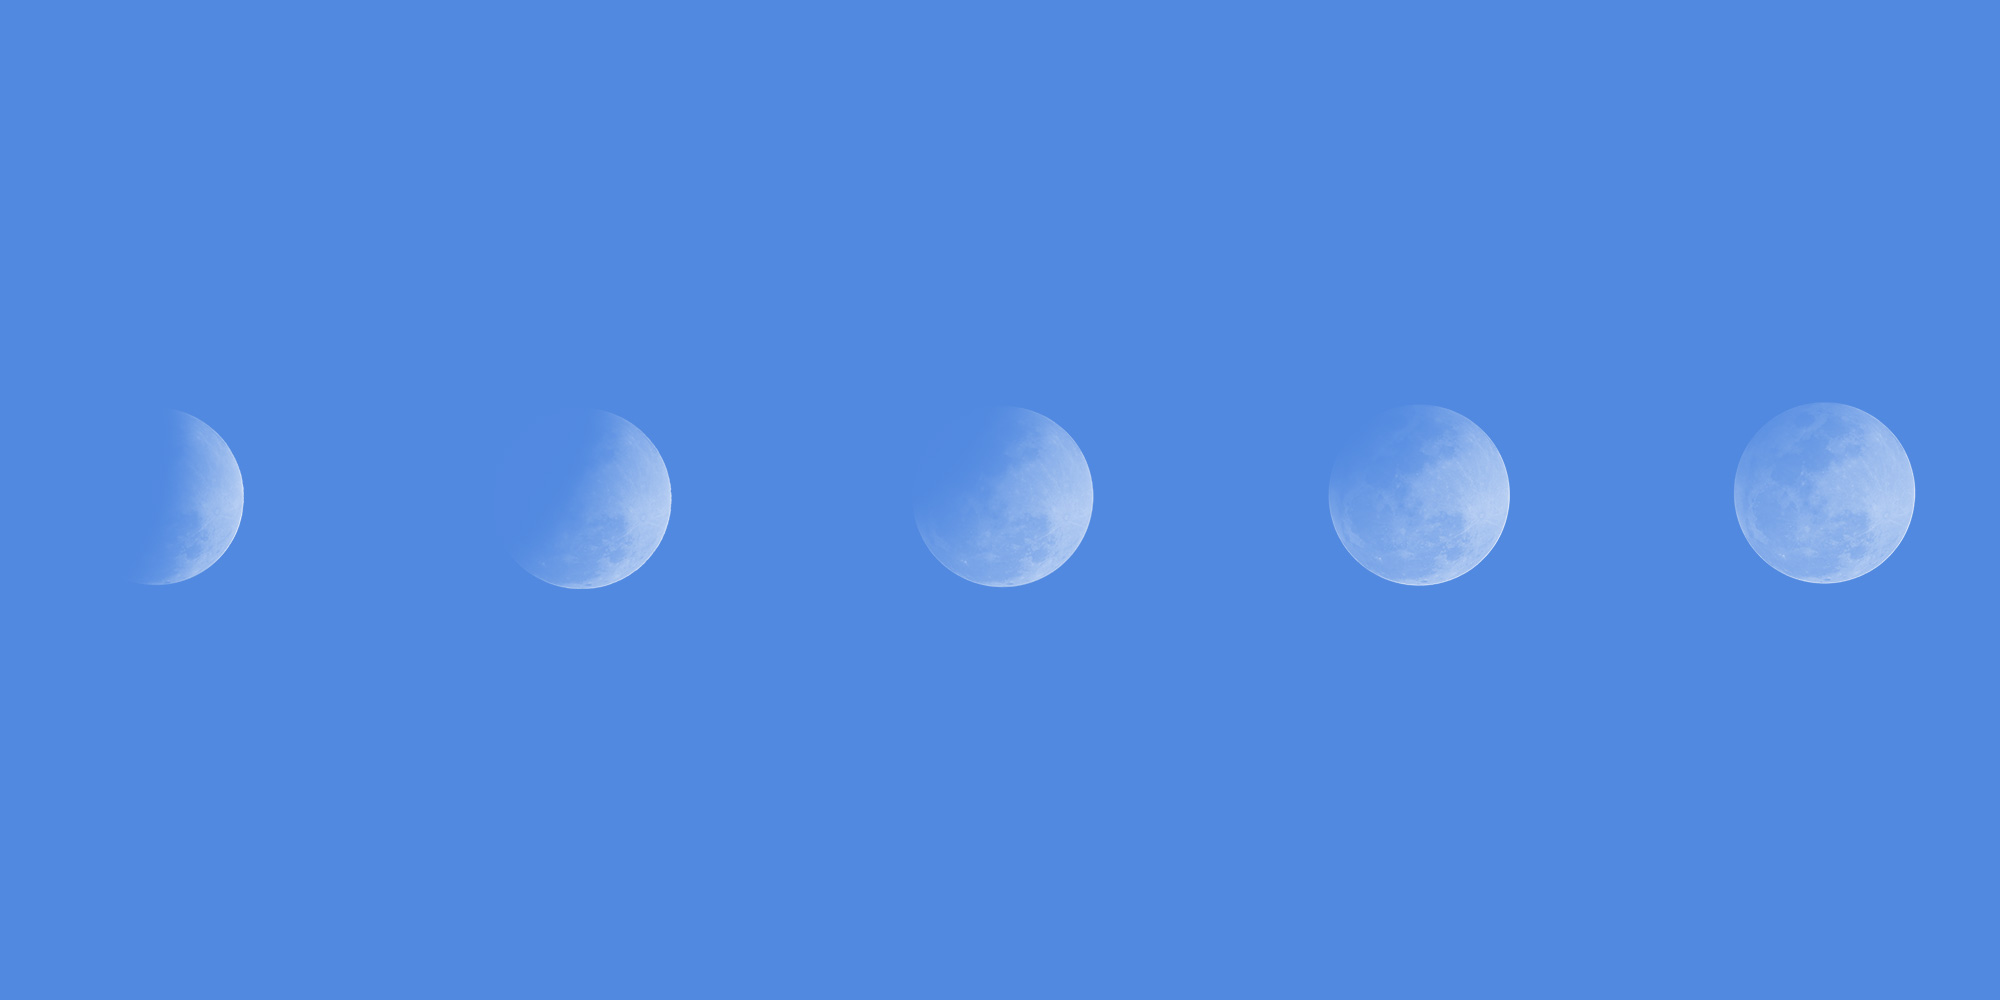 Phases of the moon on a blue background. Recovery evolves